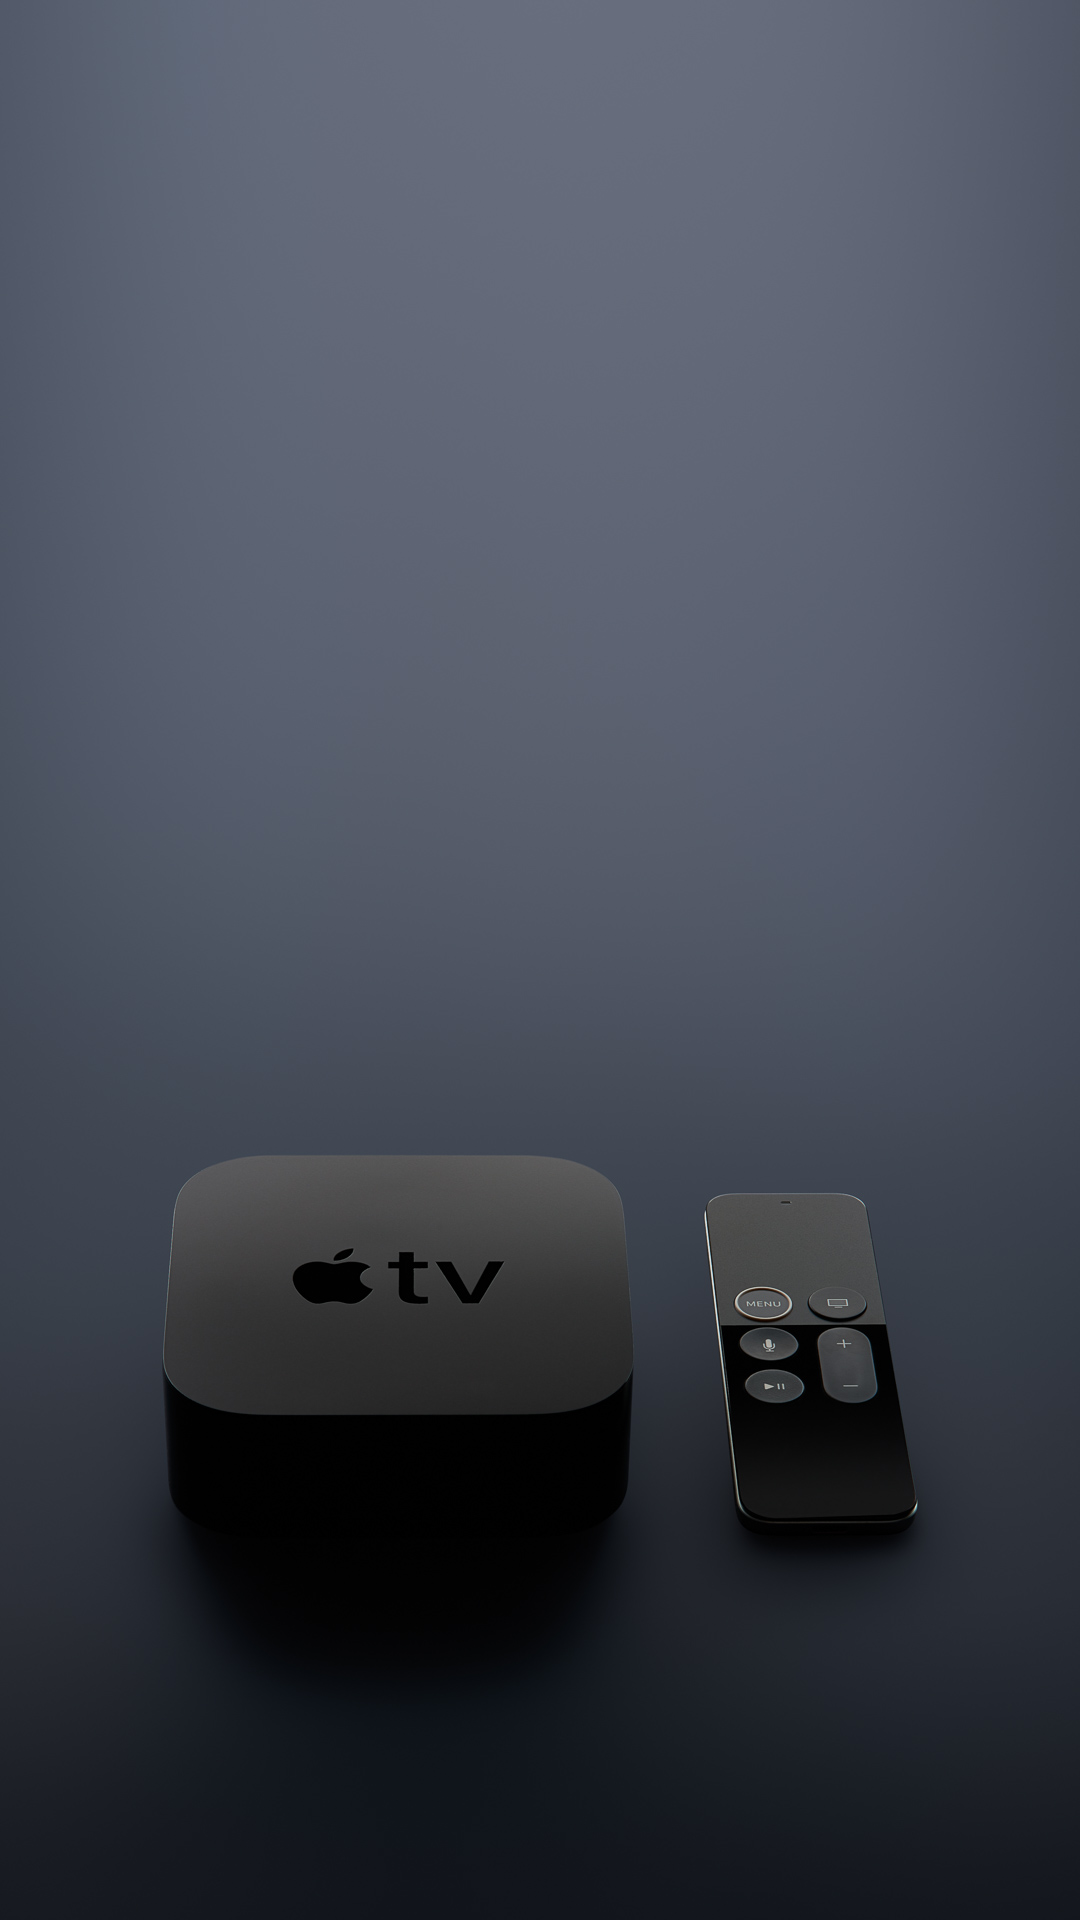 Apple TV 4K - Tech Product Photography